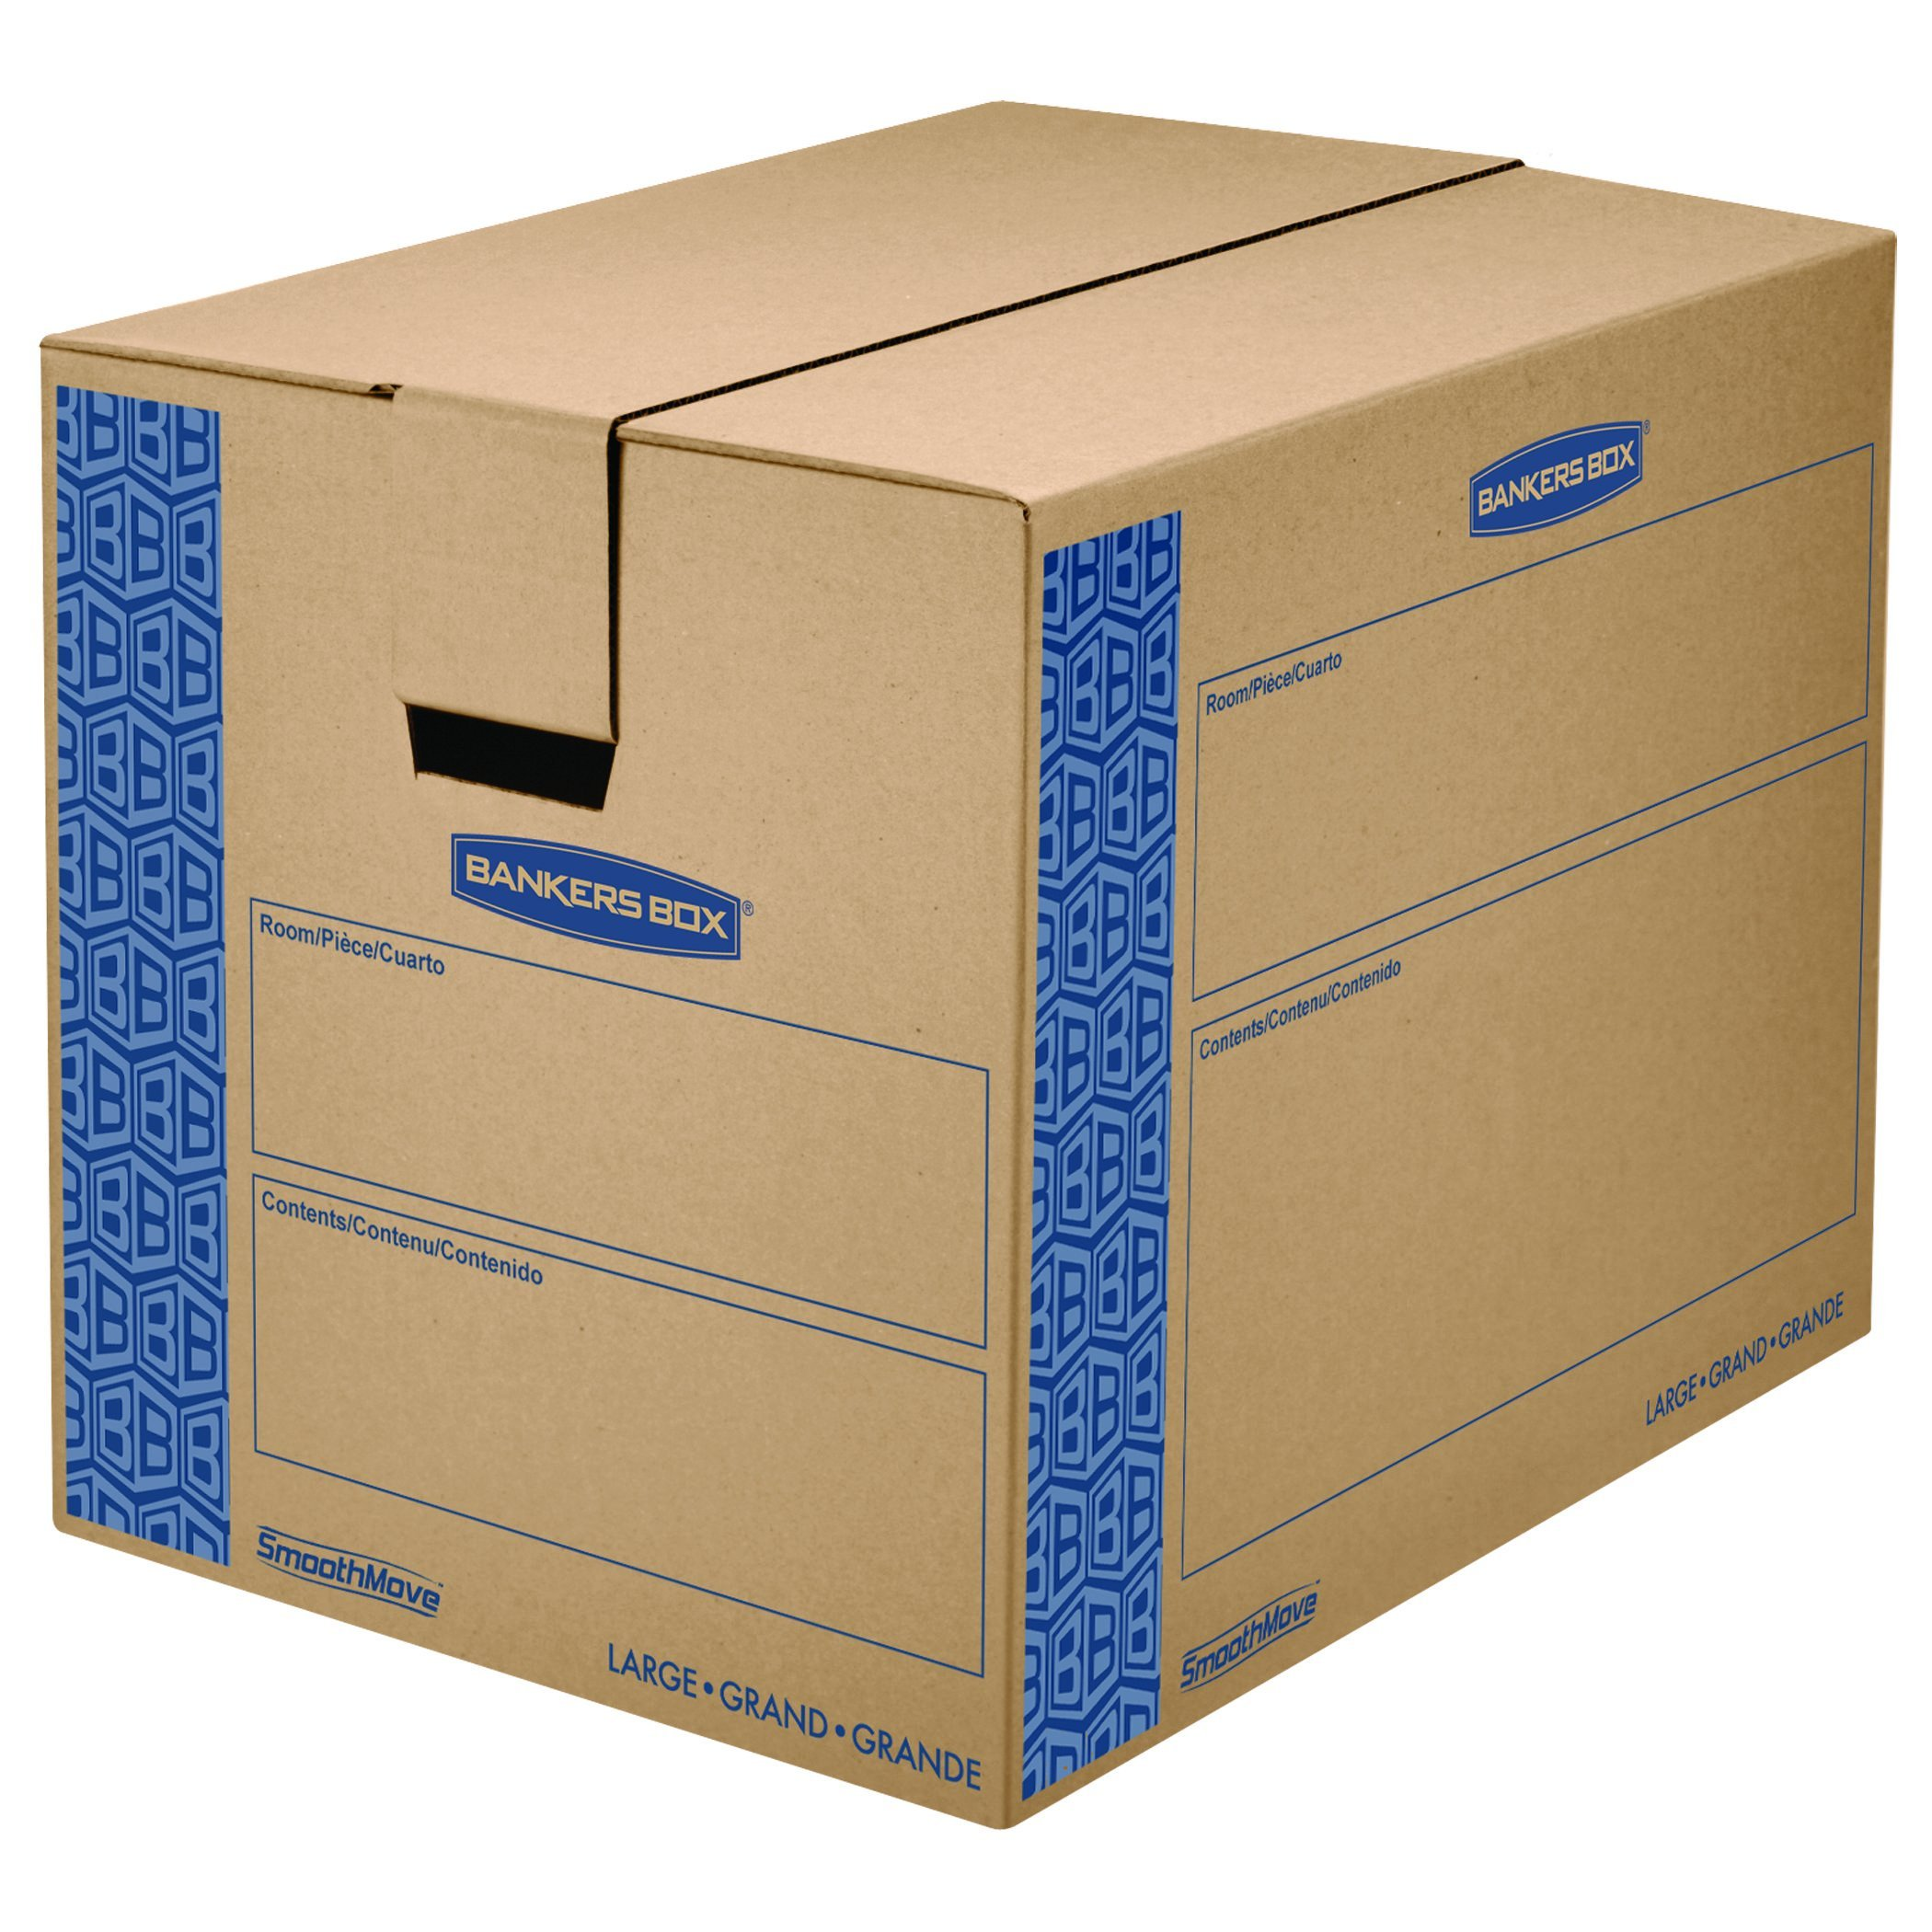 Bankers Box SmoothMove Prime Moving Boxes, Tape-Free, FastFold Easy Assembly, Handles, Reusable, Large, 24 x 18 x 18 Inches, 6 Pack (0062901)